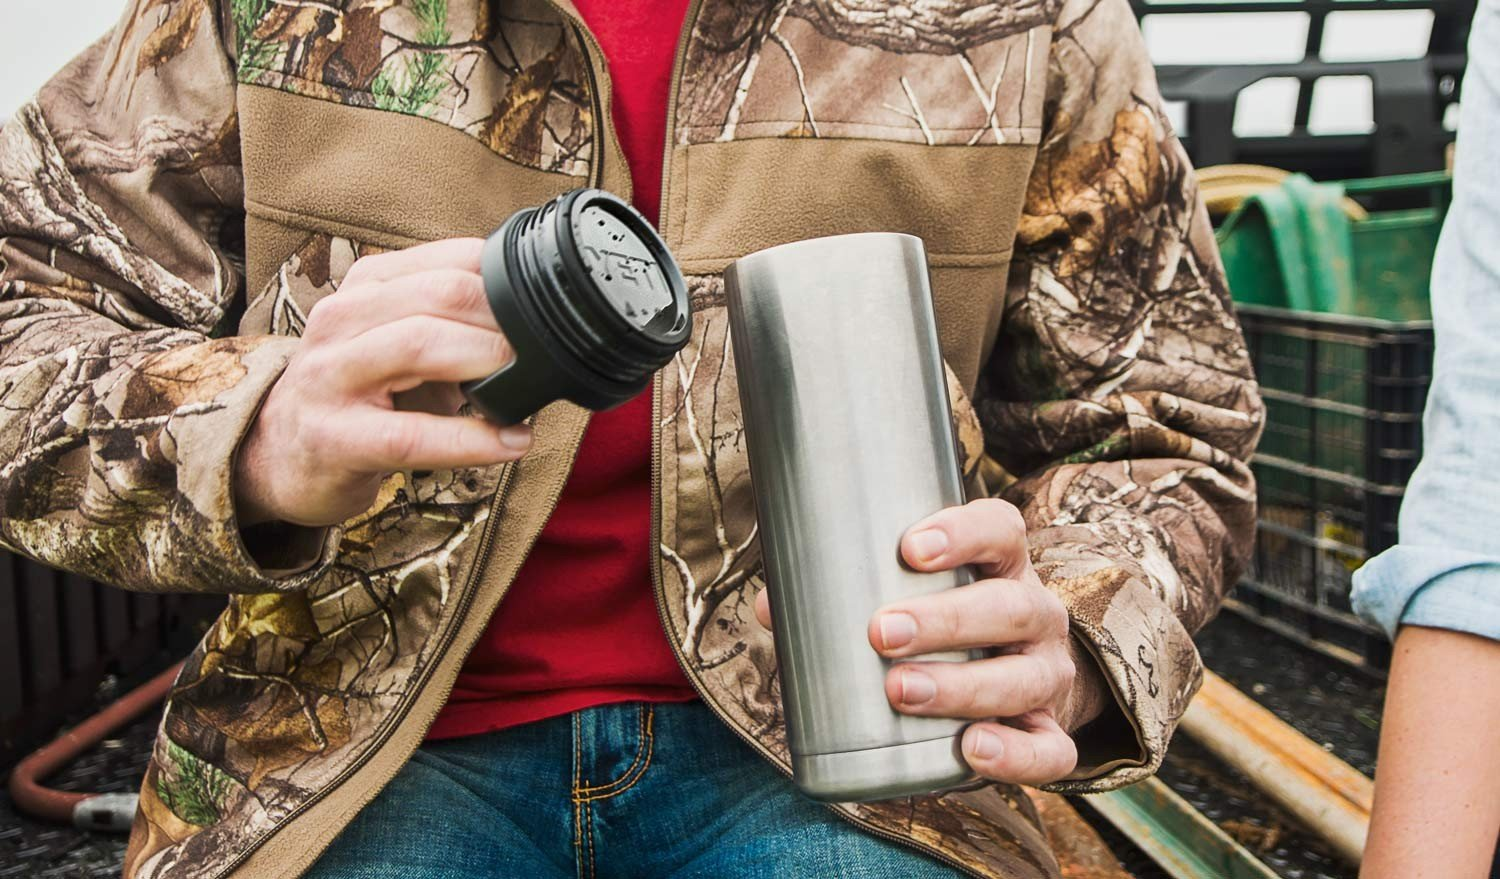 YETI Rambler 18 oz Stainless Steel Vacuum Insulated Bottle with Cap by YETI (Image #6)